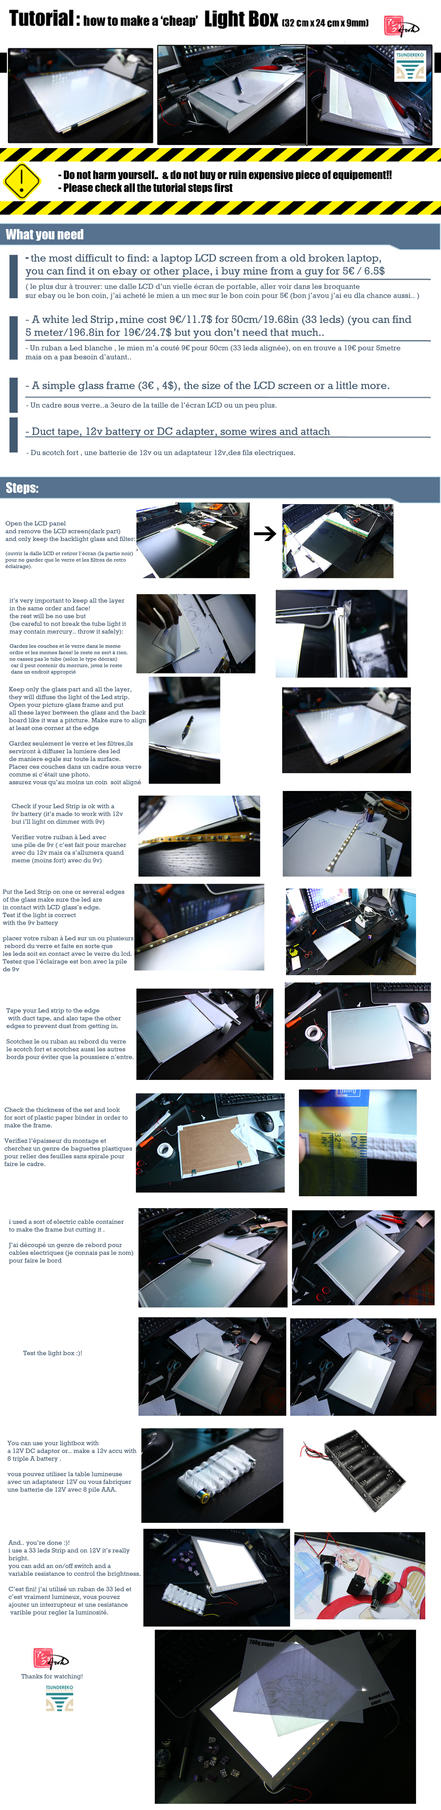 Flat And Portable LightBox Tutorial by onwa7